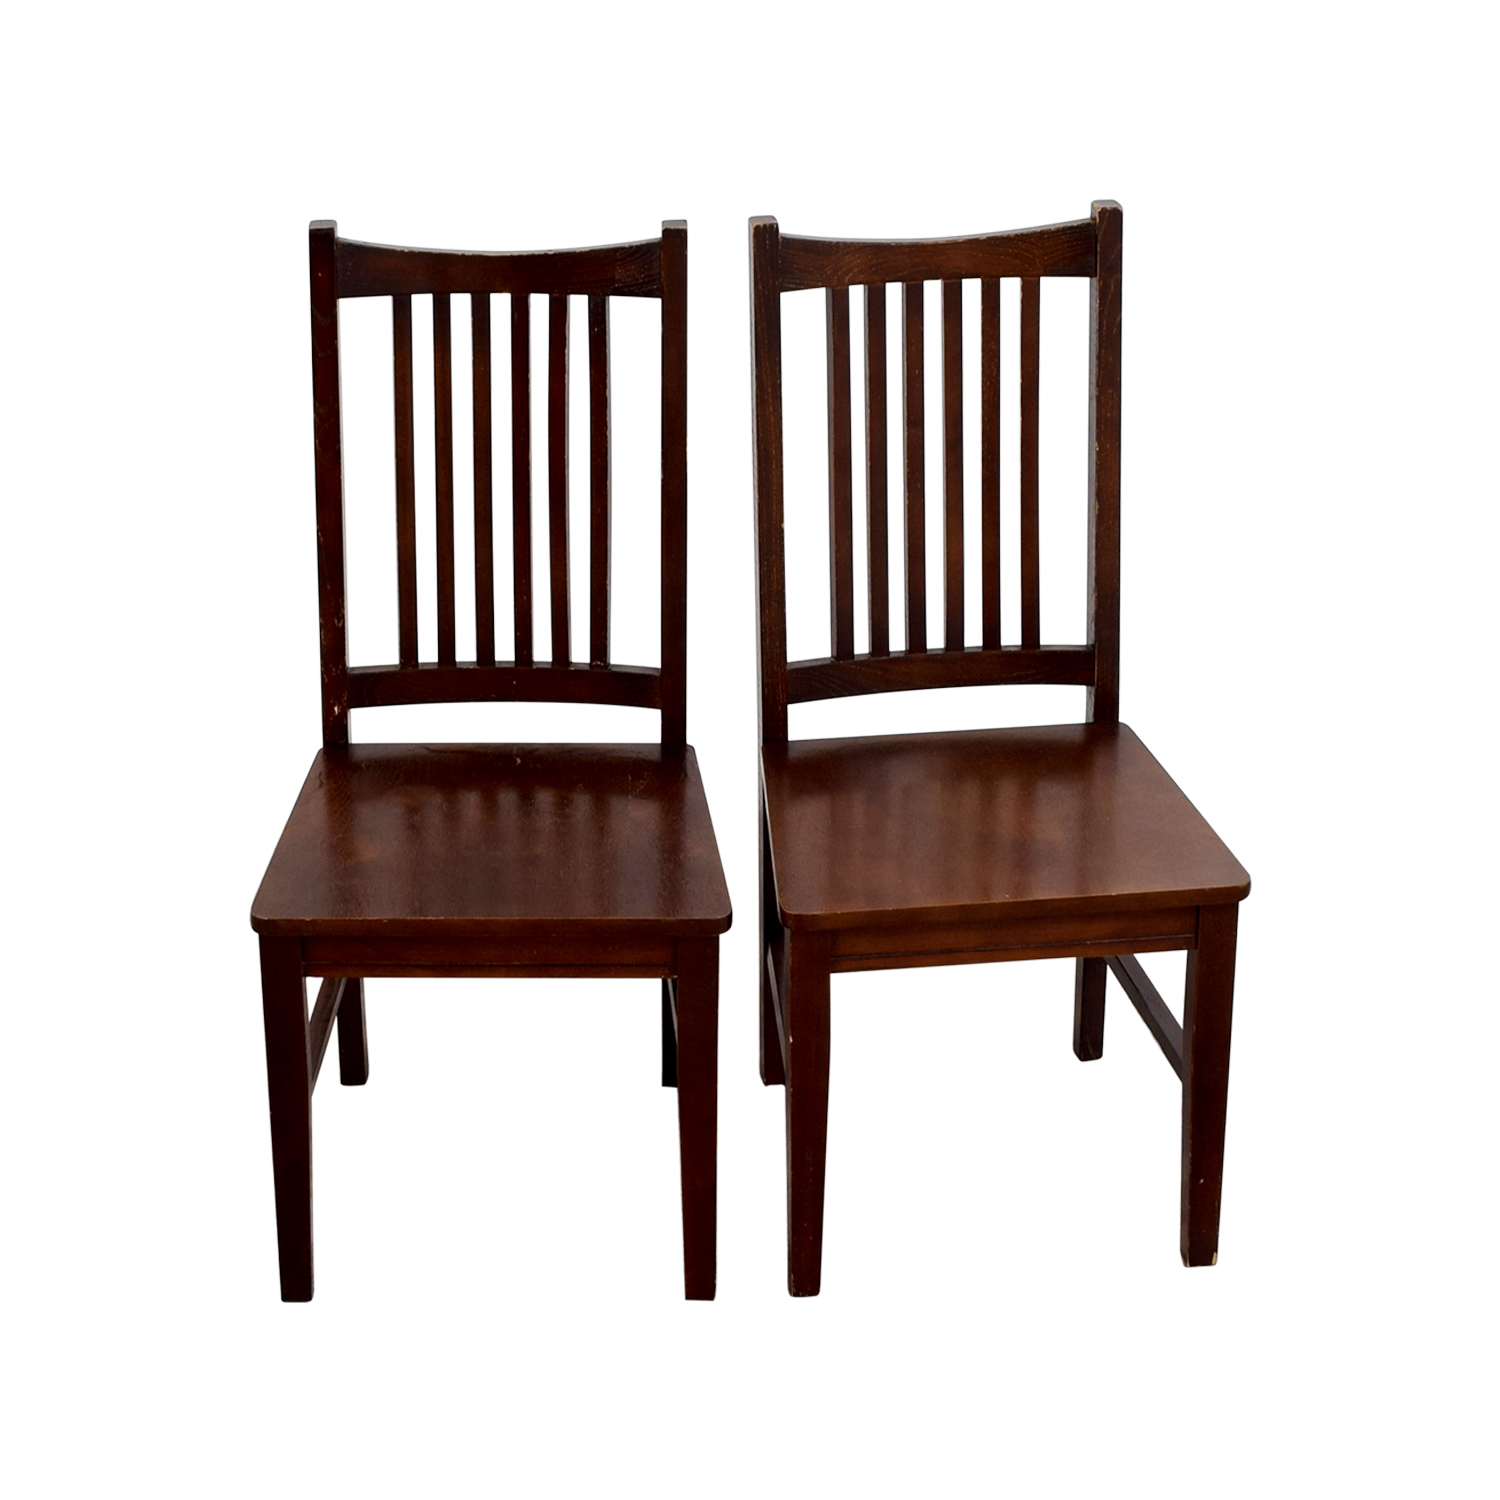 Second hand solid wood chairs dark